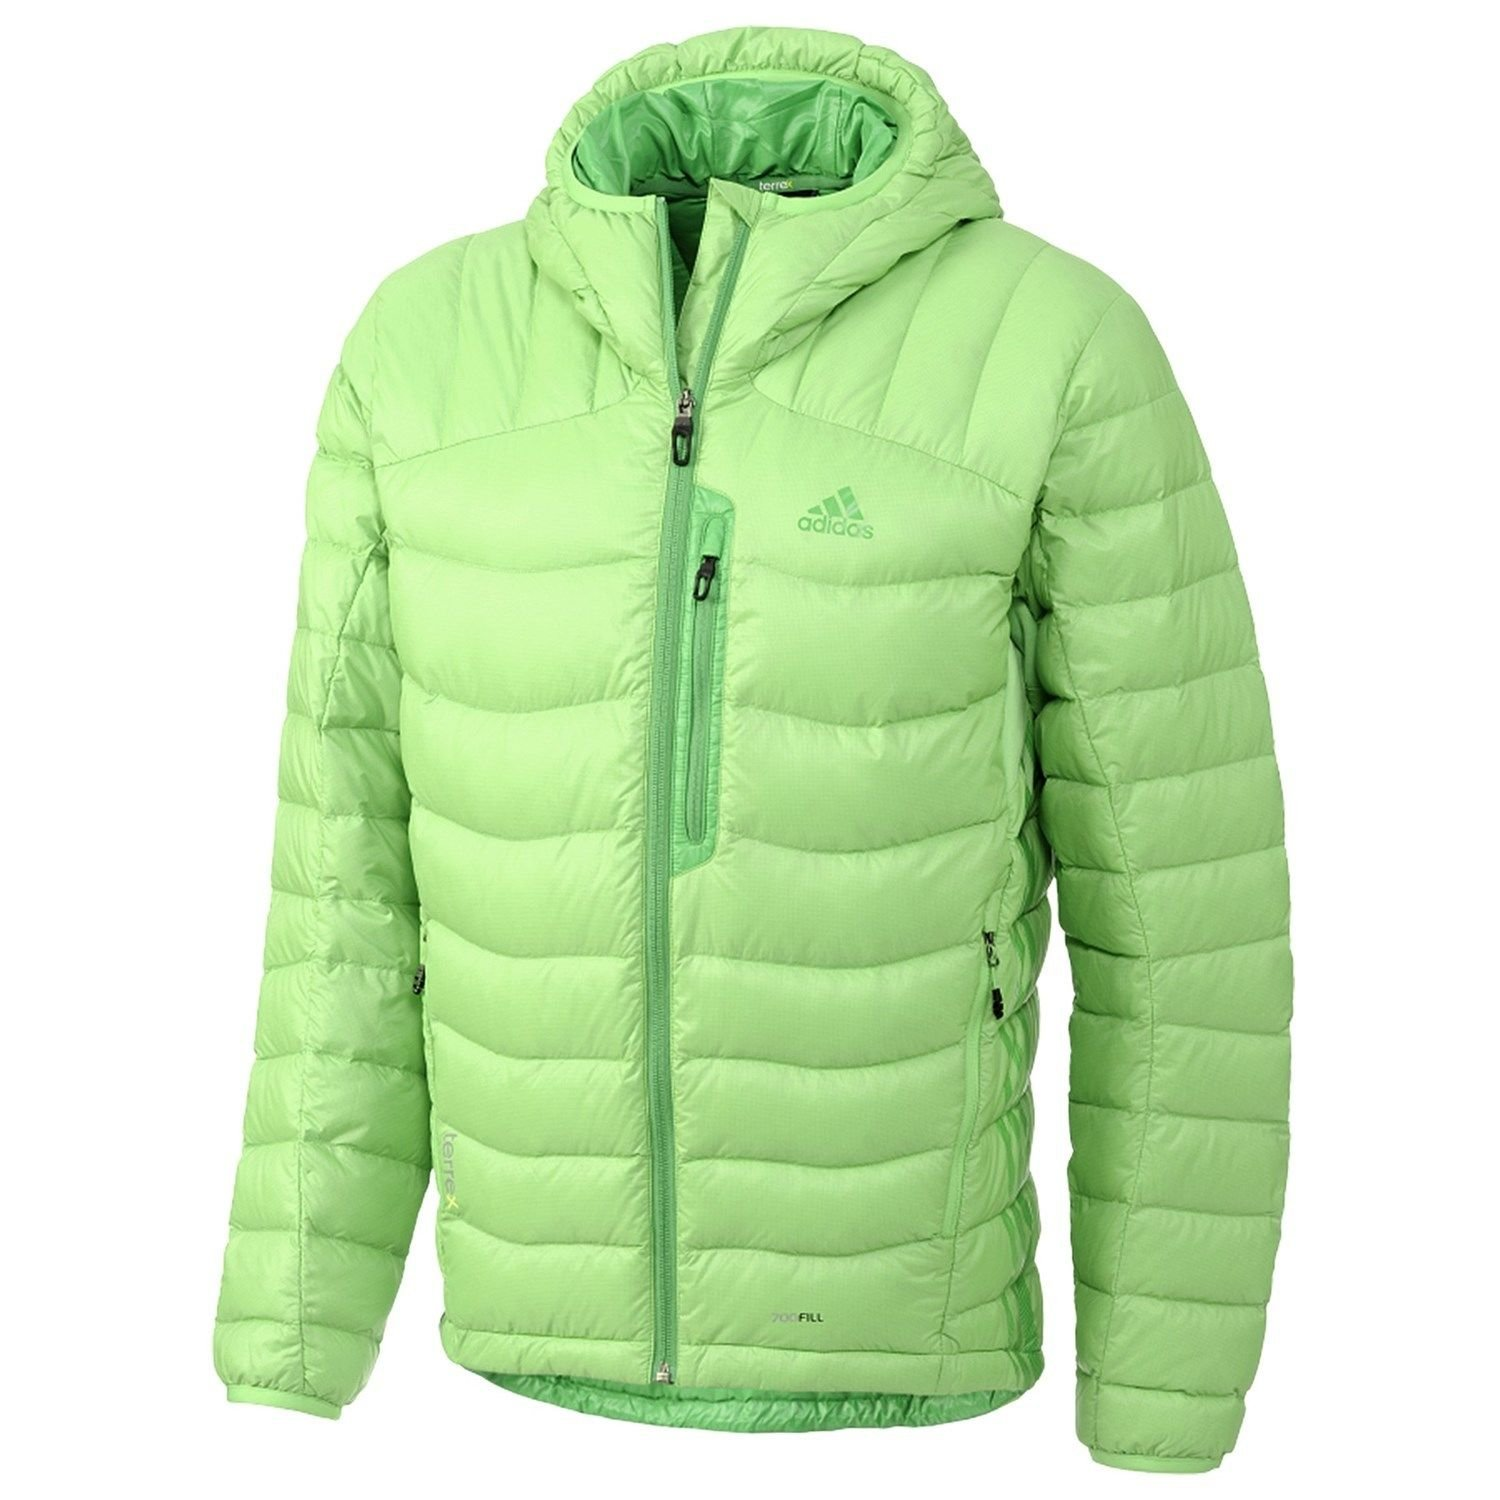 Mens Adidas Quilted Jacket Coat Green Winter Warm Water-resistant Zip Lined